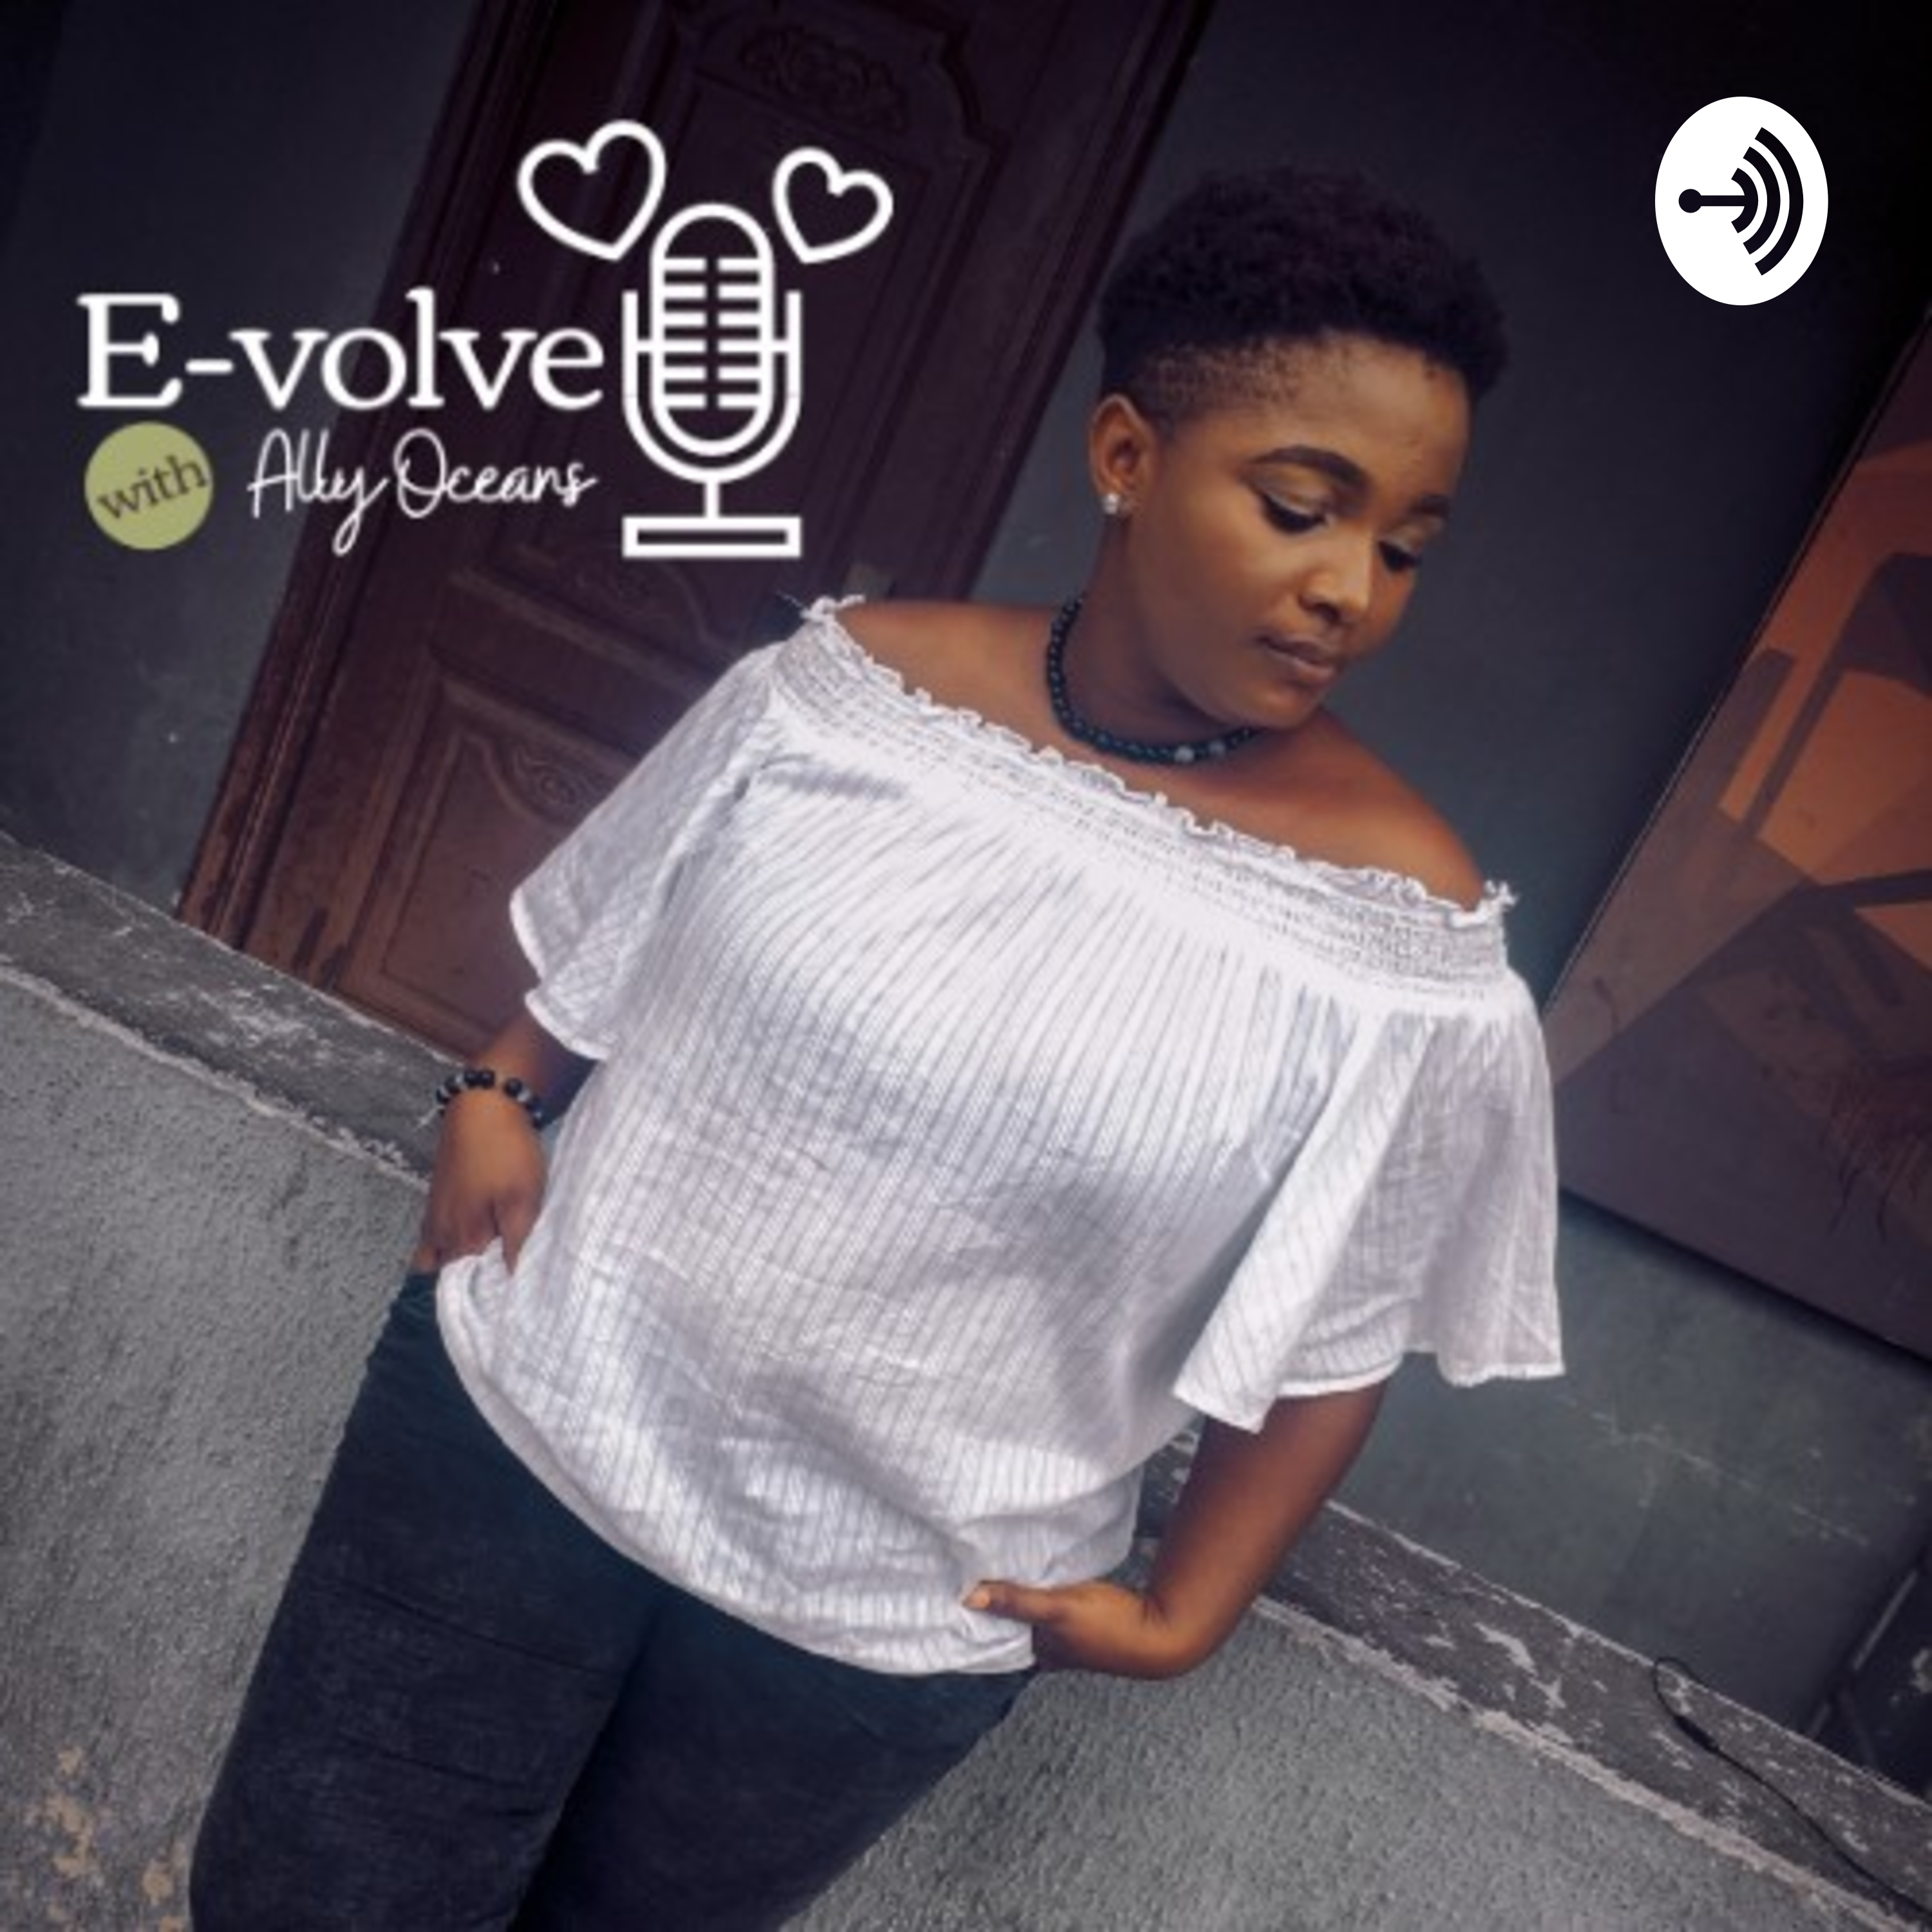 E-volve with Ally Oceans podcast